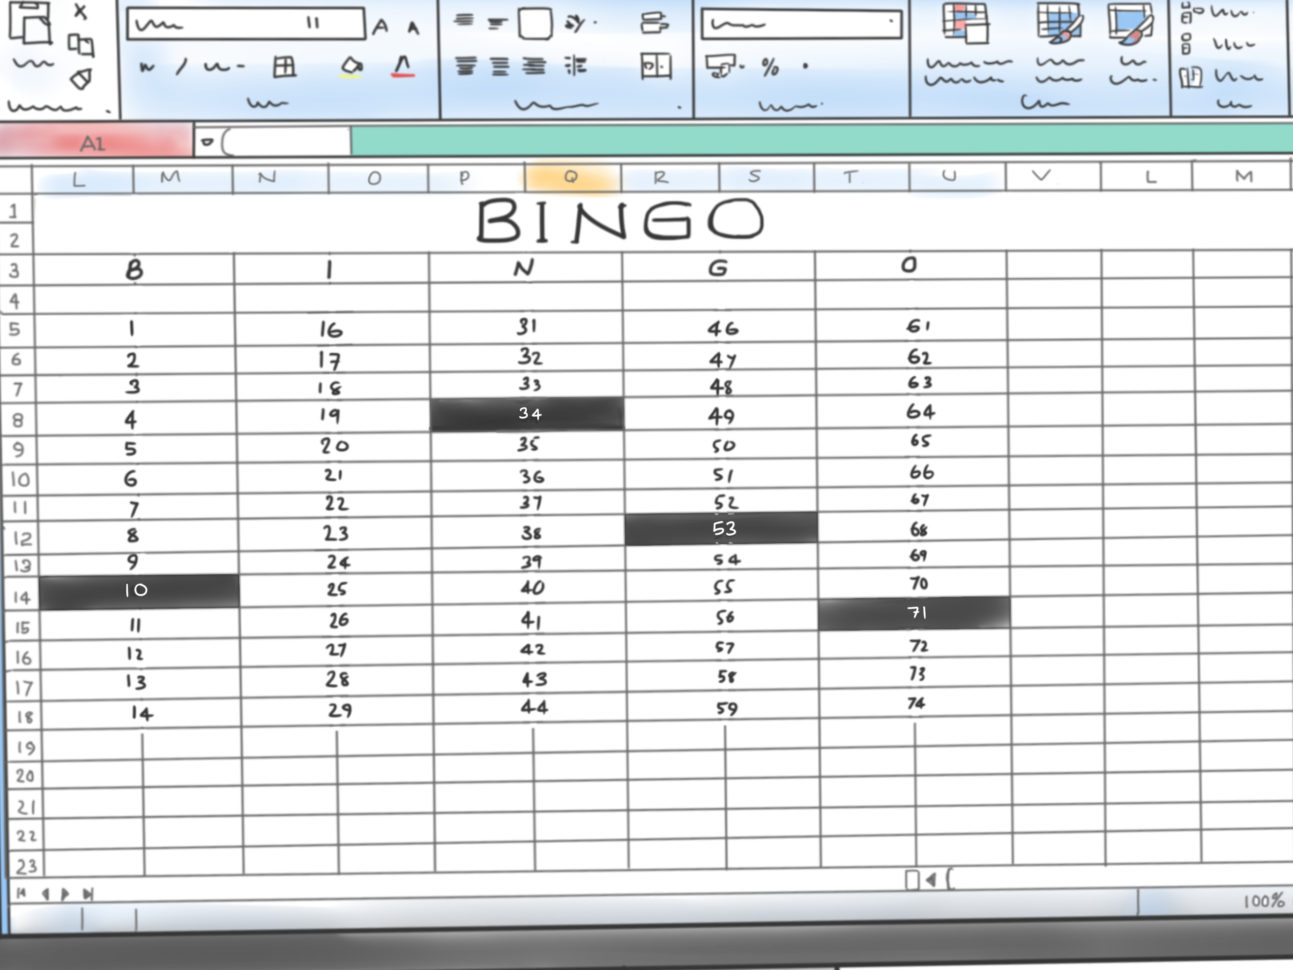 Bingo Spreadsheet Inside How To Make A Bingo Game In